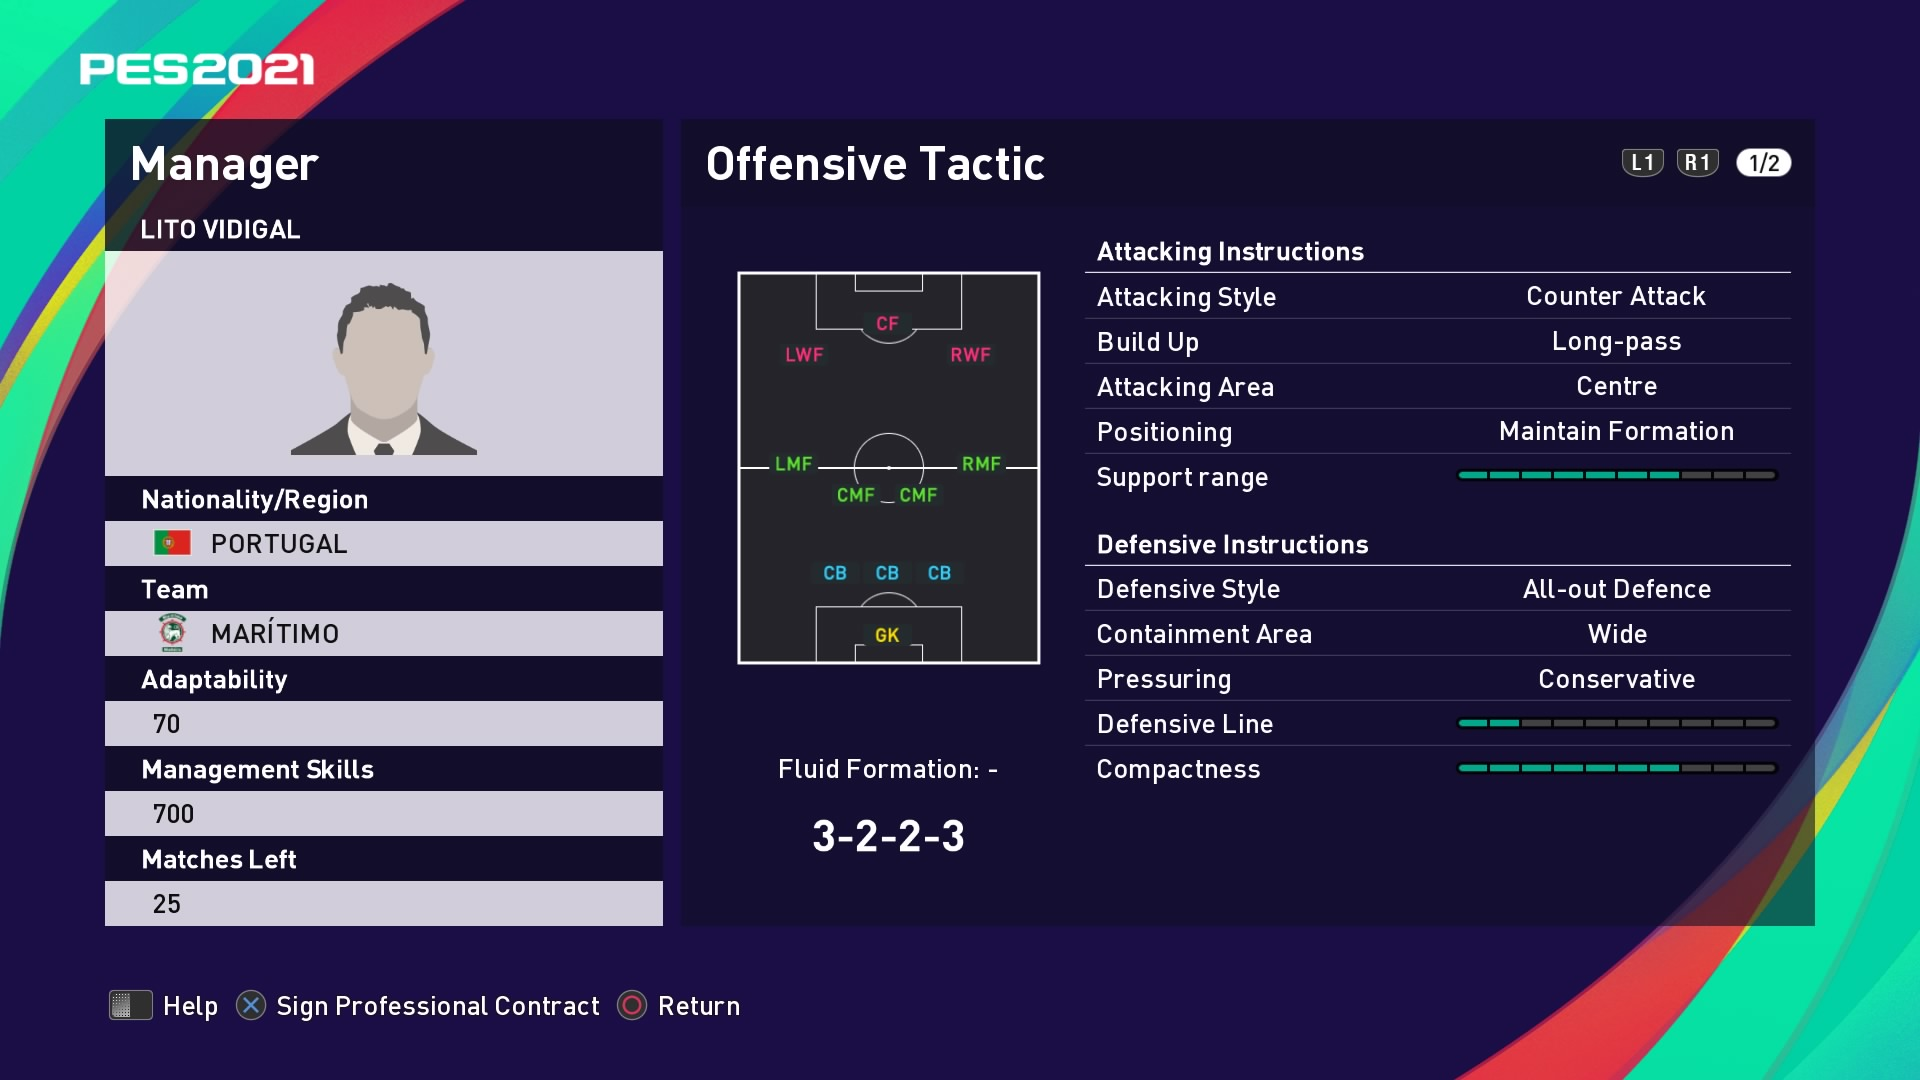 Lito Vidigal Offensive Tactic in PES 2021 myClub